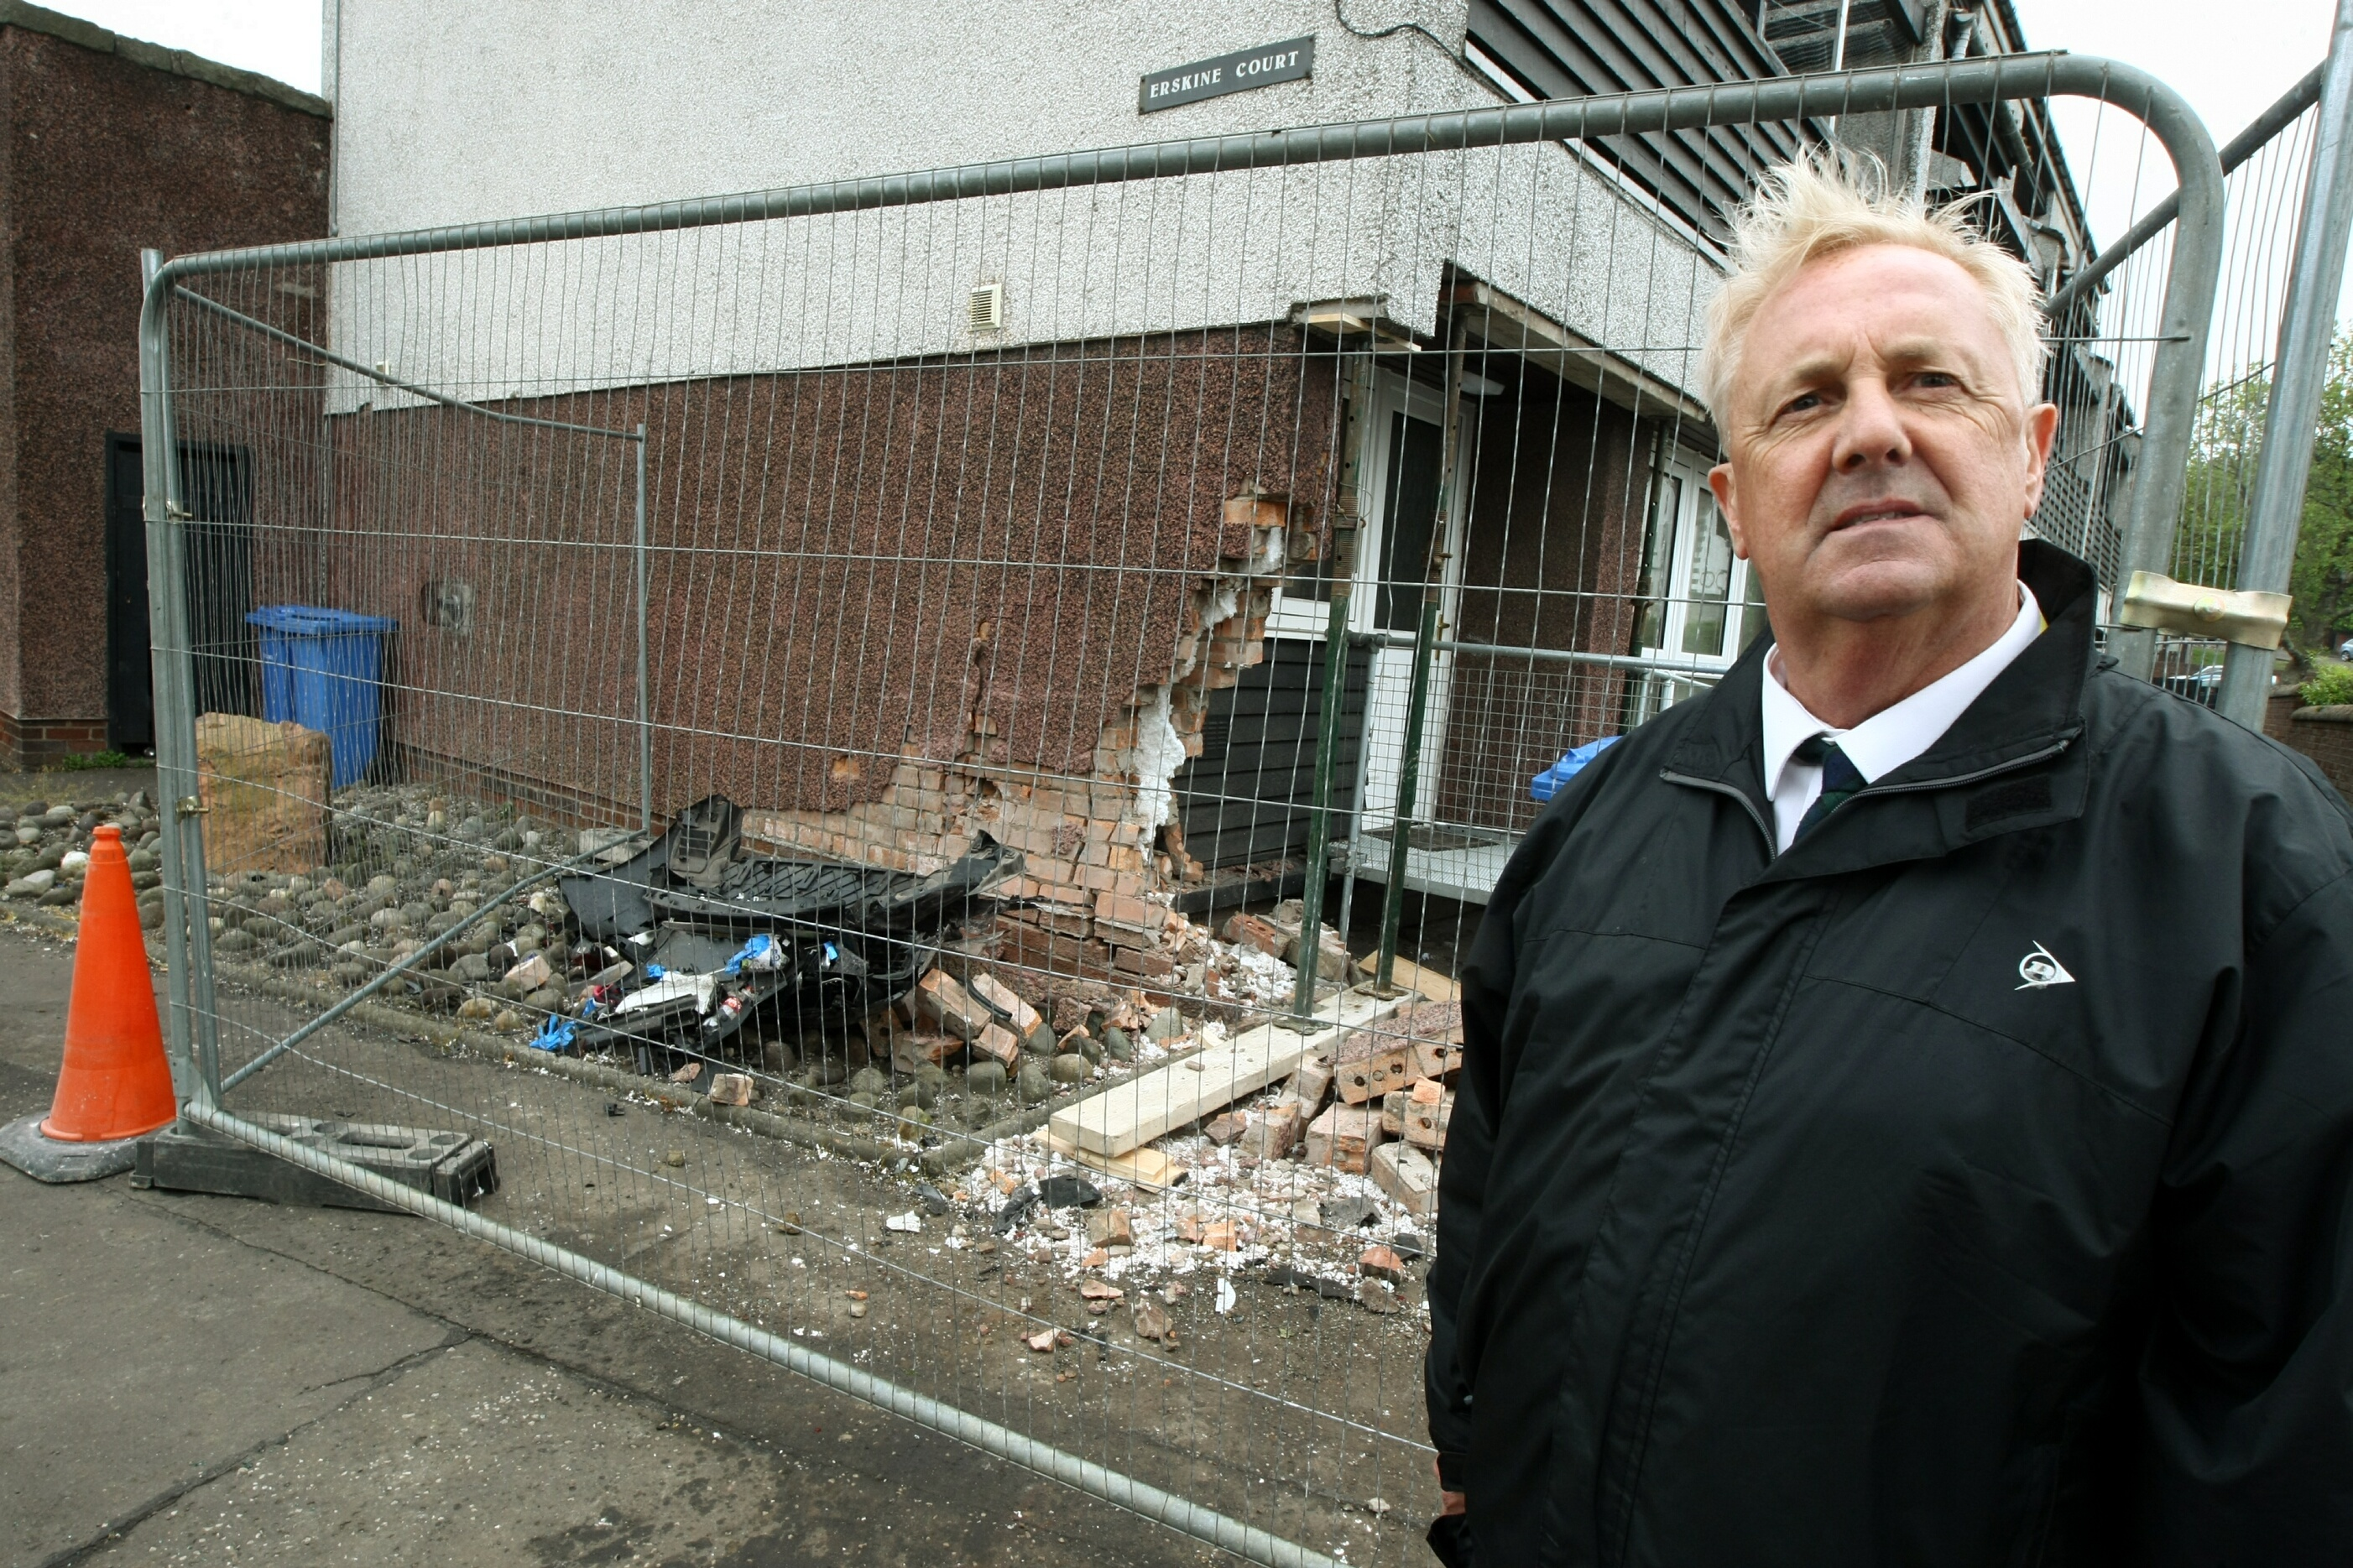 Councillor O'Brien says the flats should be levelled